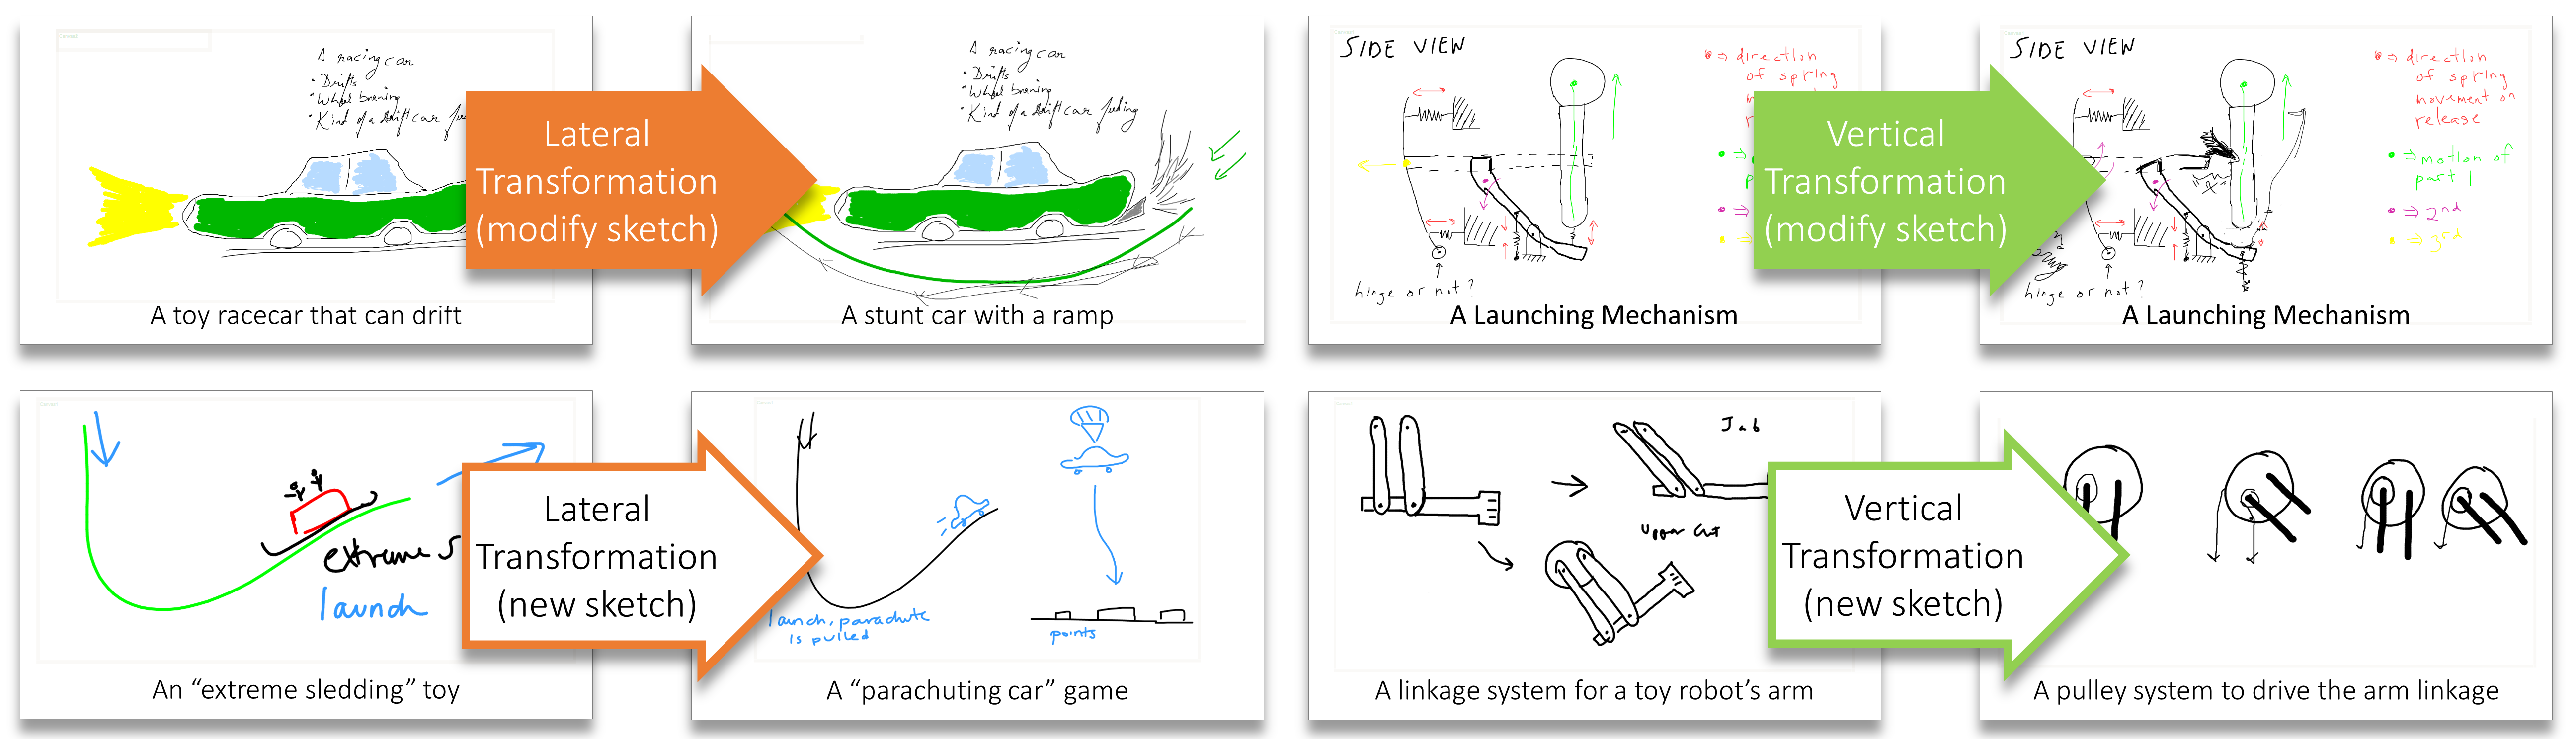 Collaborative Sketching with skWiki: A Case Study